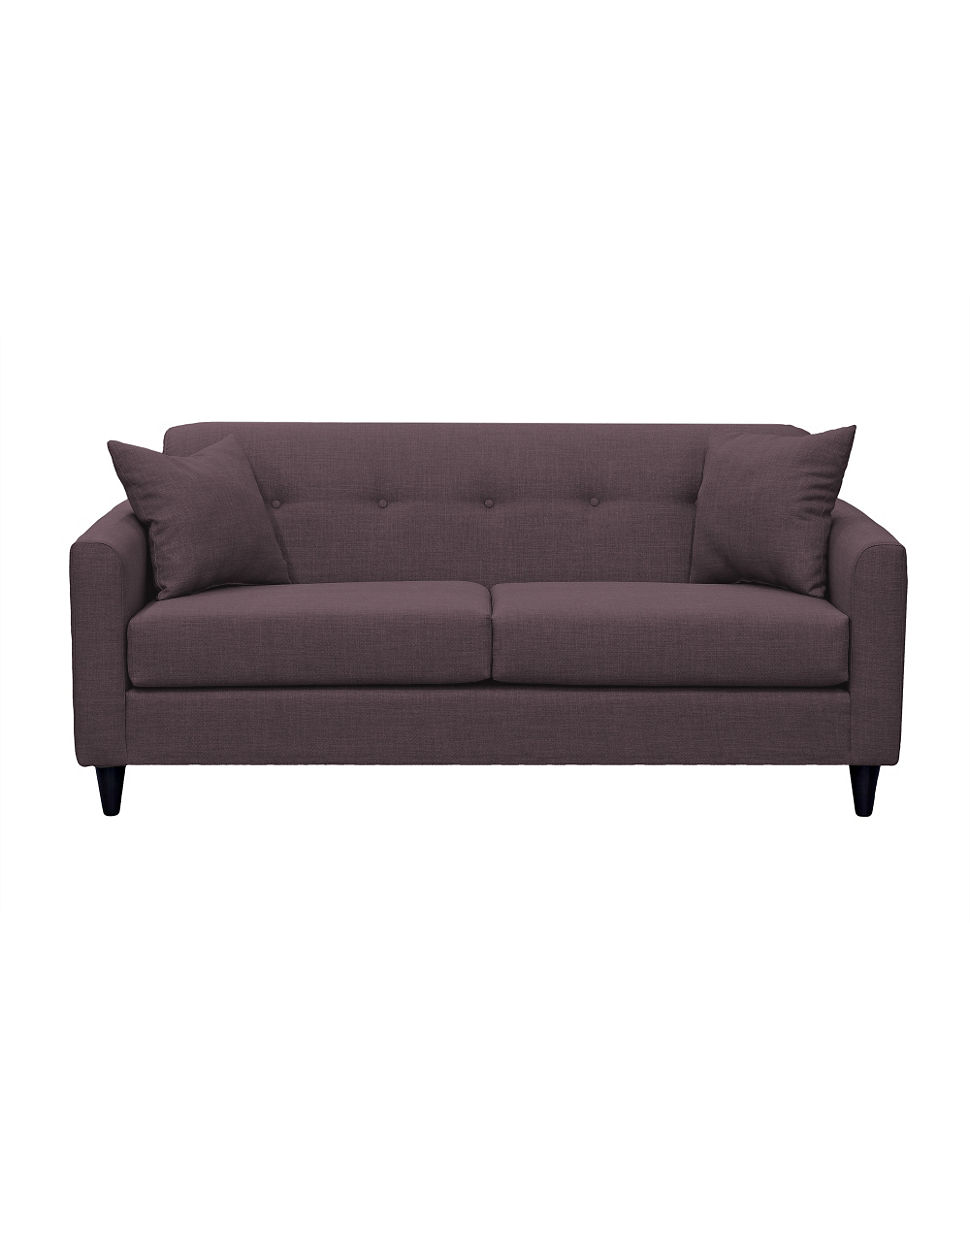 uni enlarge sectional briar home the dublin click product manhattan simmons rs sec classy to piece sect furniture united